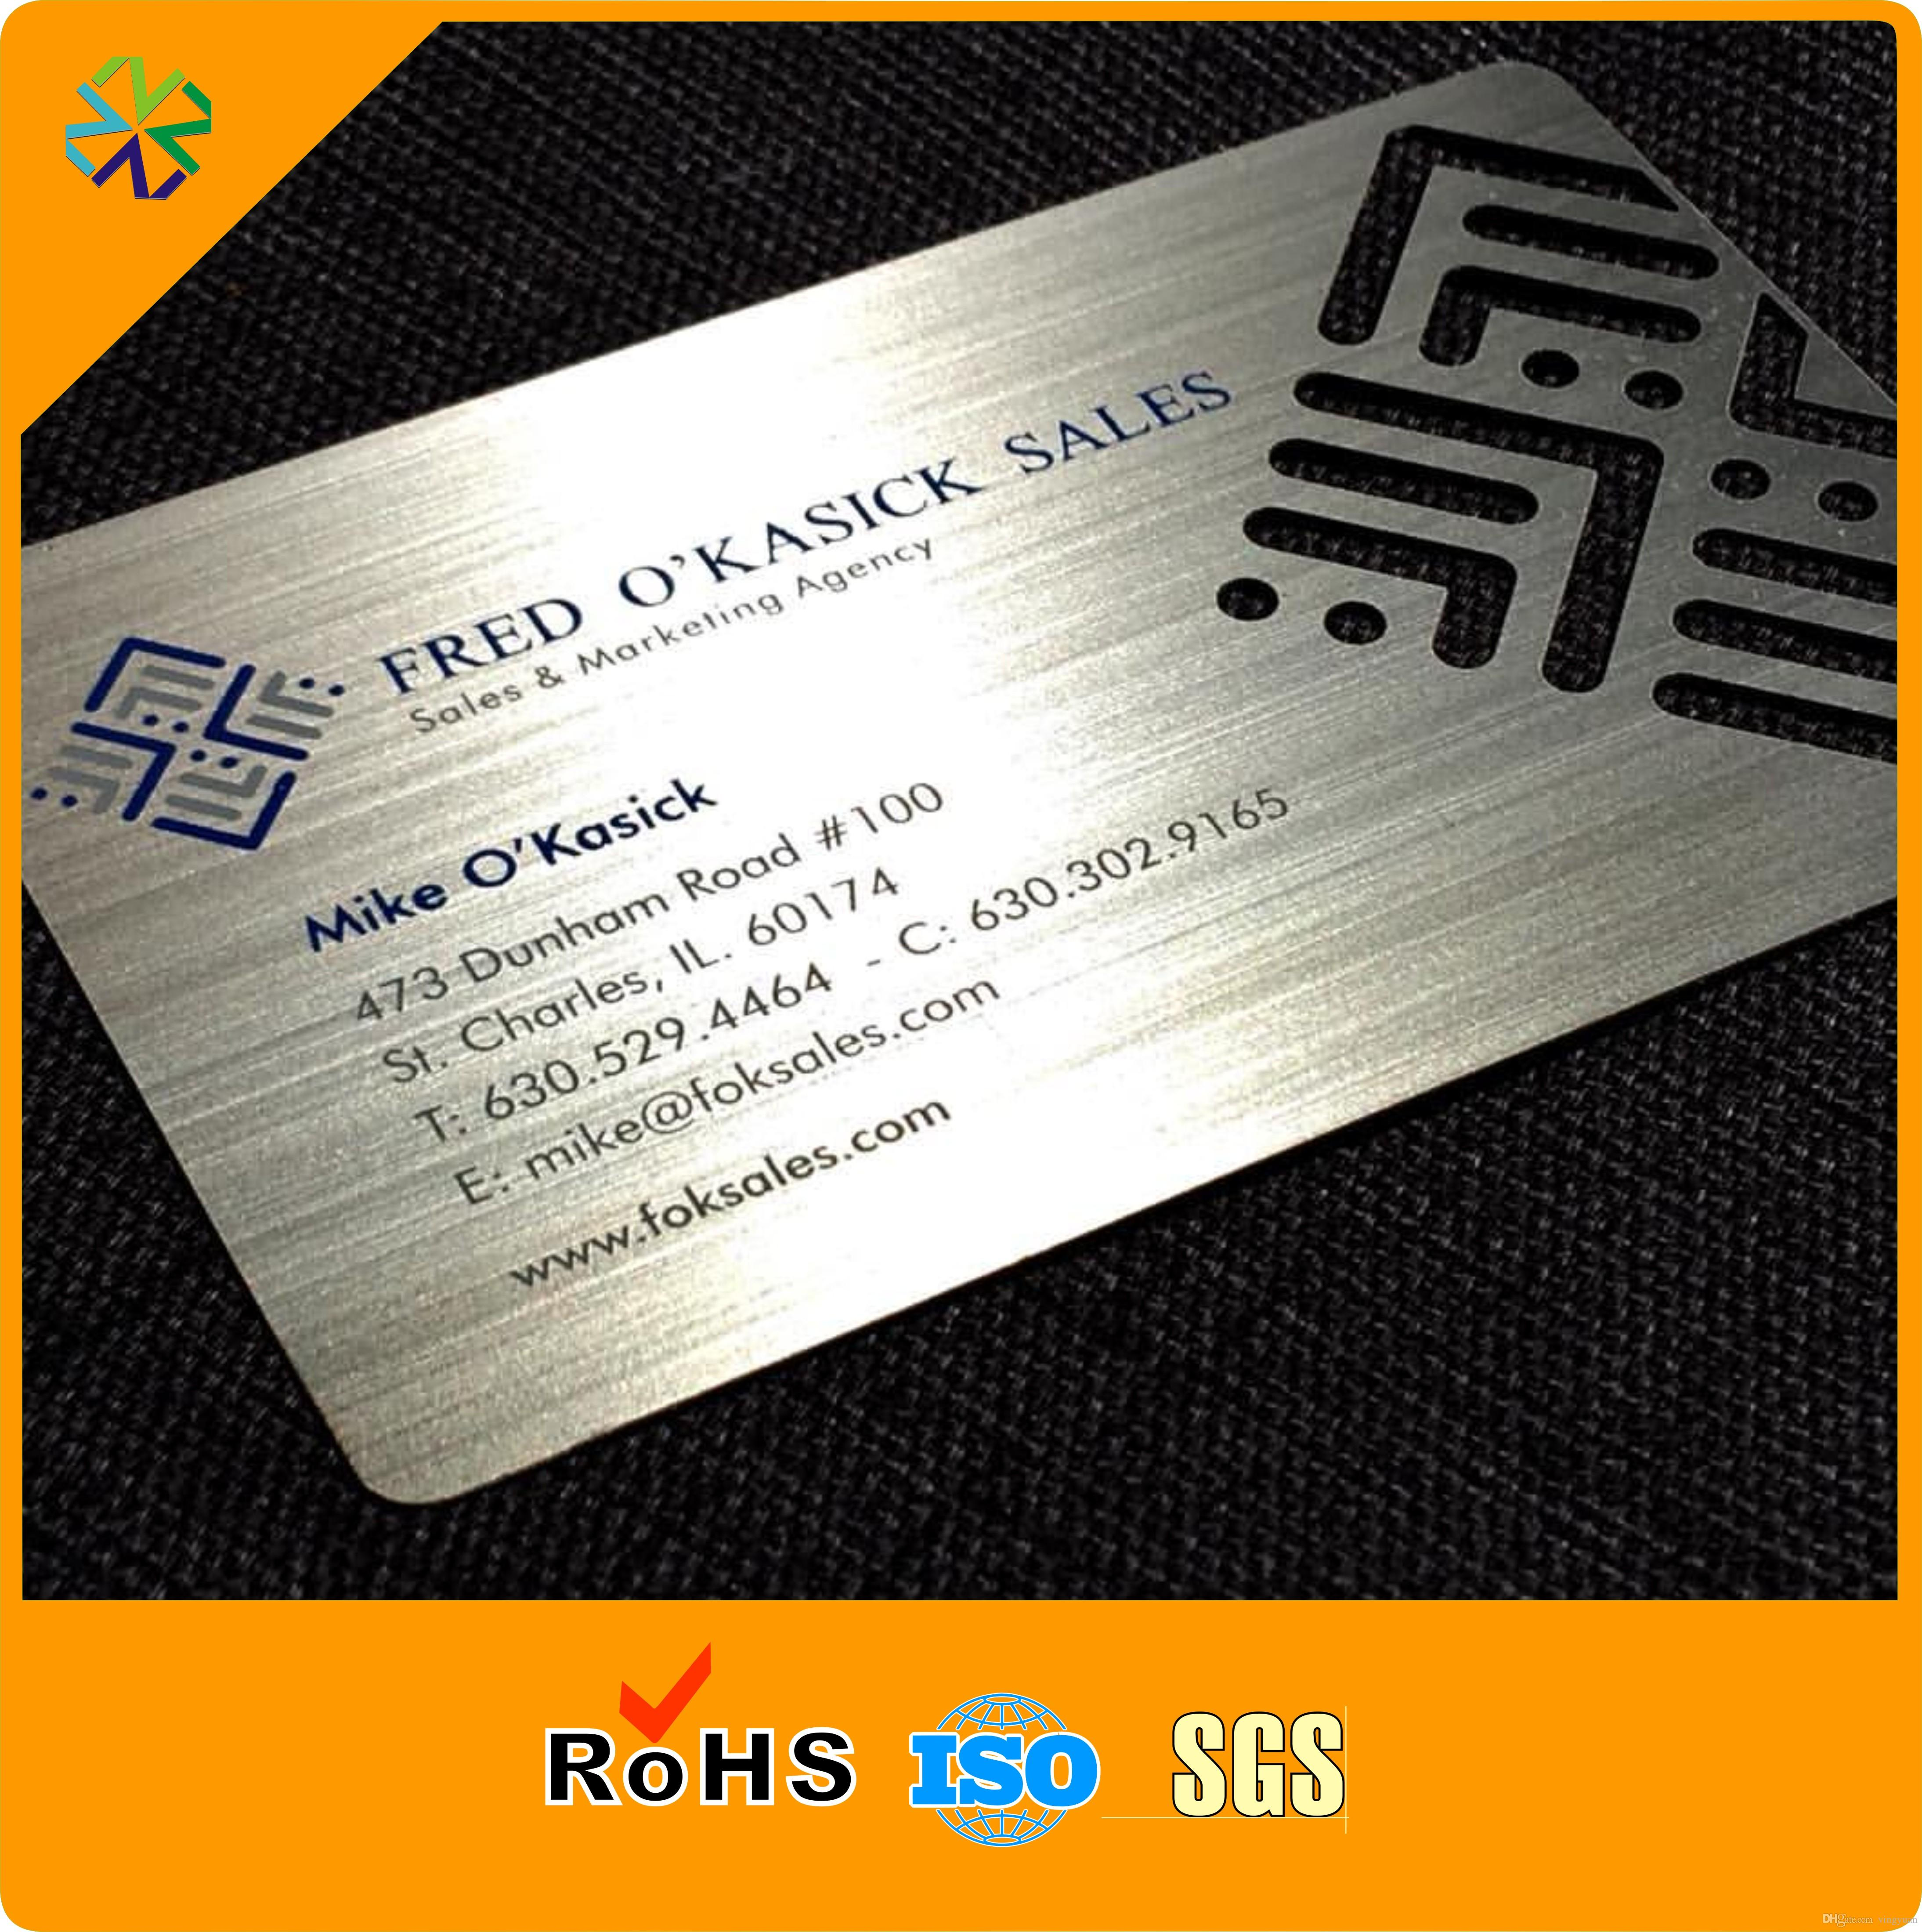 Cr80 stainless steel material brushed effect metal steel card with cr80 stainless steel material brushed effect metal steel card with silk printing and plated glossy stainless metal business cards stainless metal business reheart Gallery